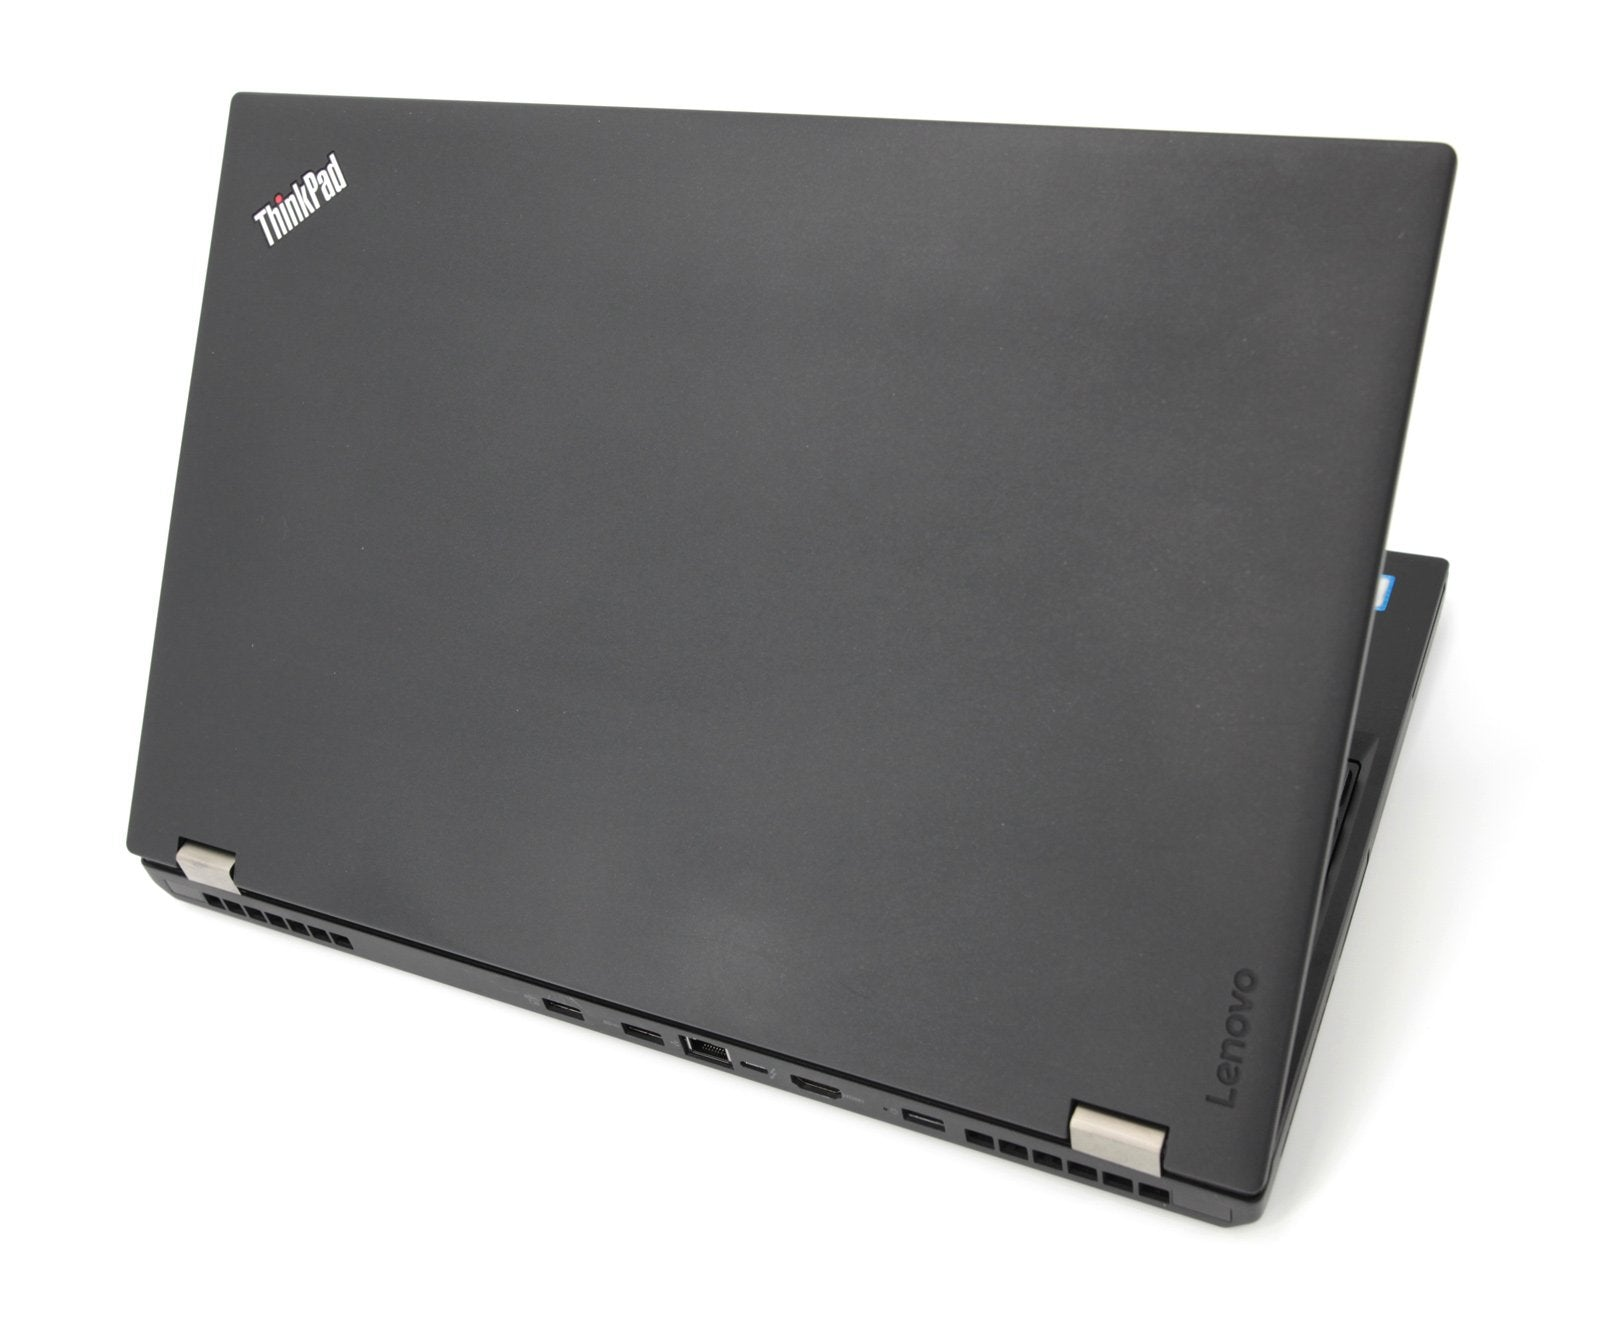 Lenovo Thinkpad P50 FHD Laptop: Core i7-6820HQ Quadro 256GB, 16GB RAM Inc VAT - CruiseTech